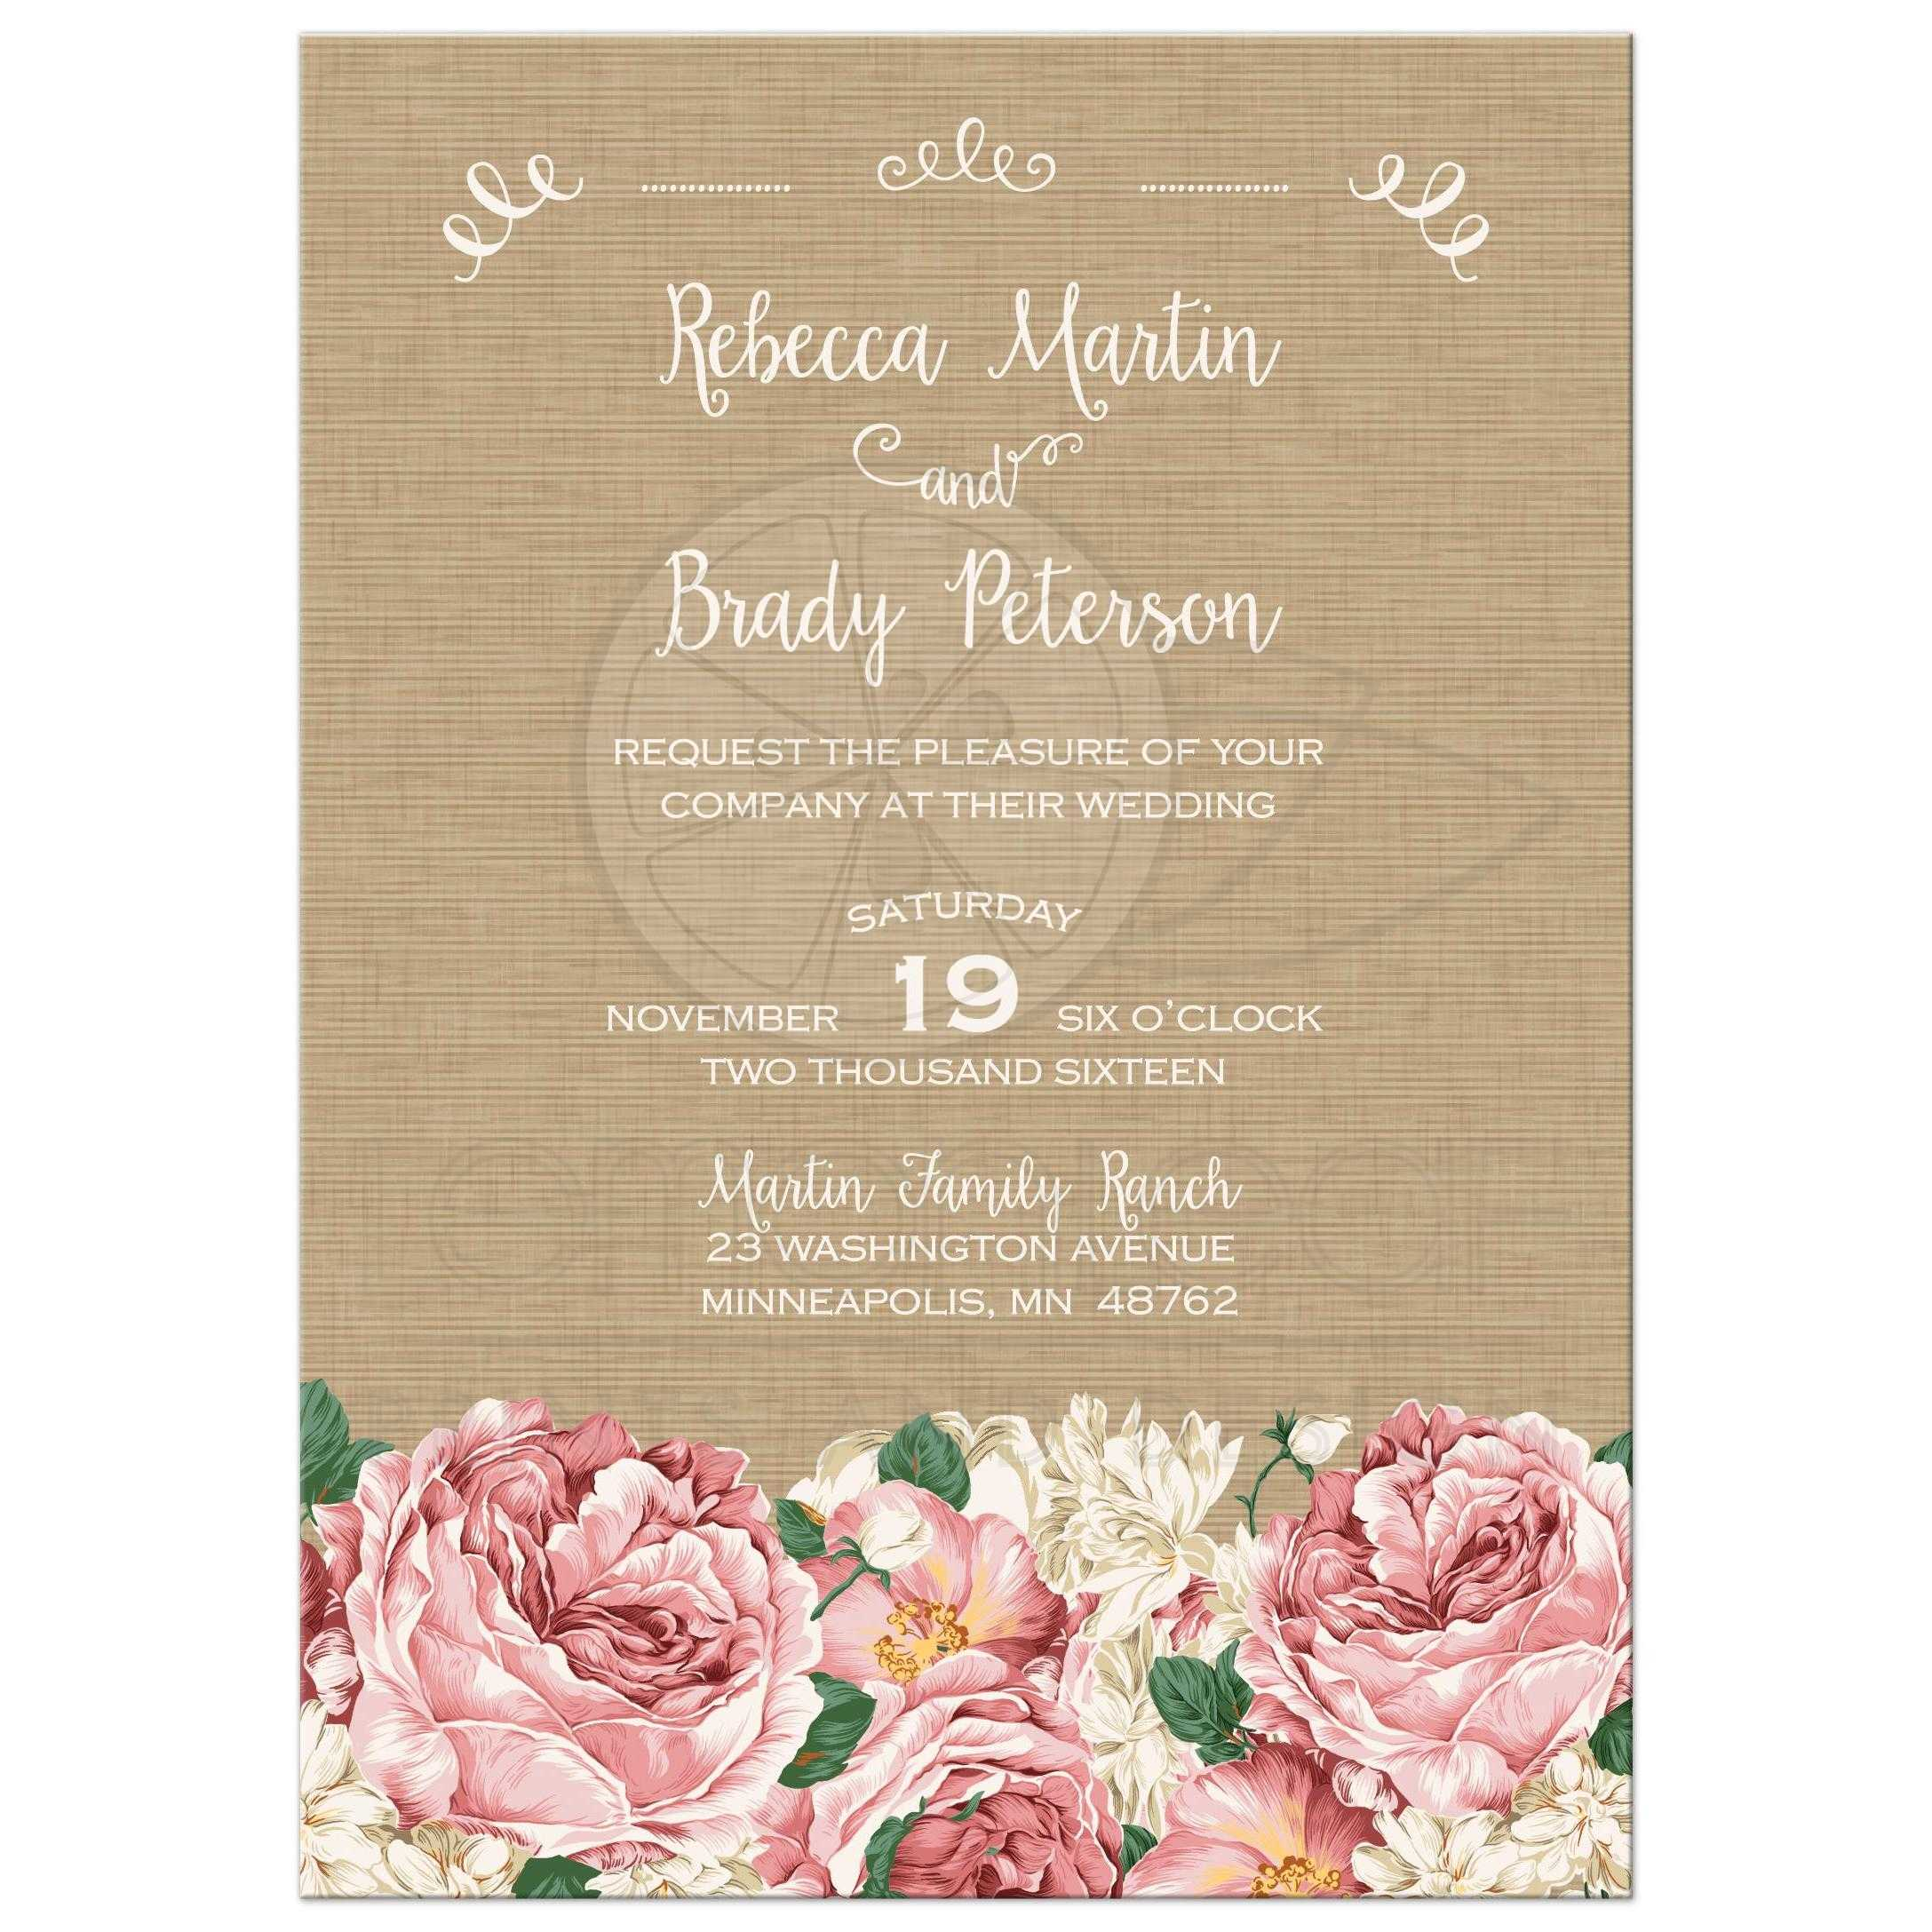 Rustic Pink And White Peony Fl Wedding Invitation